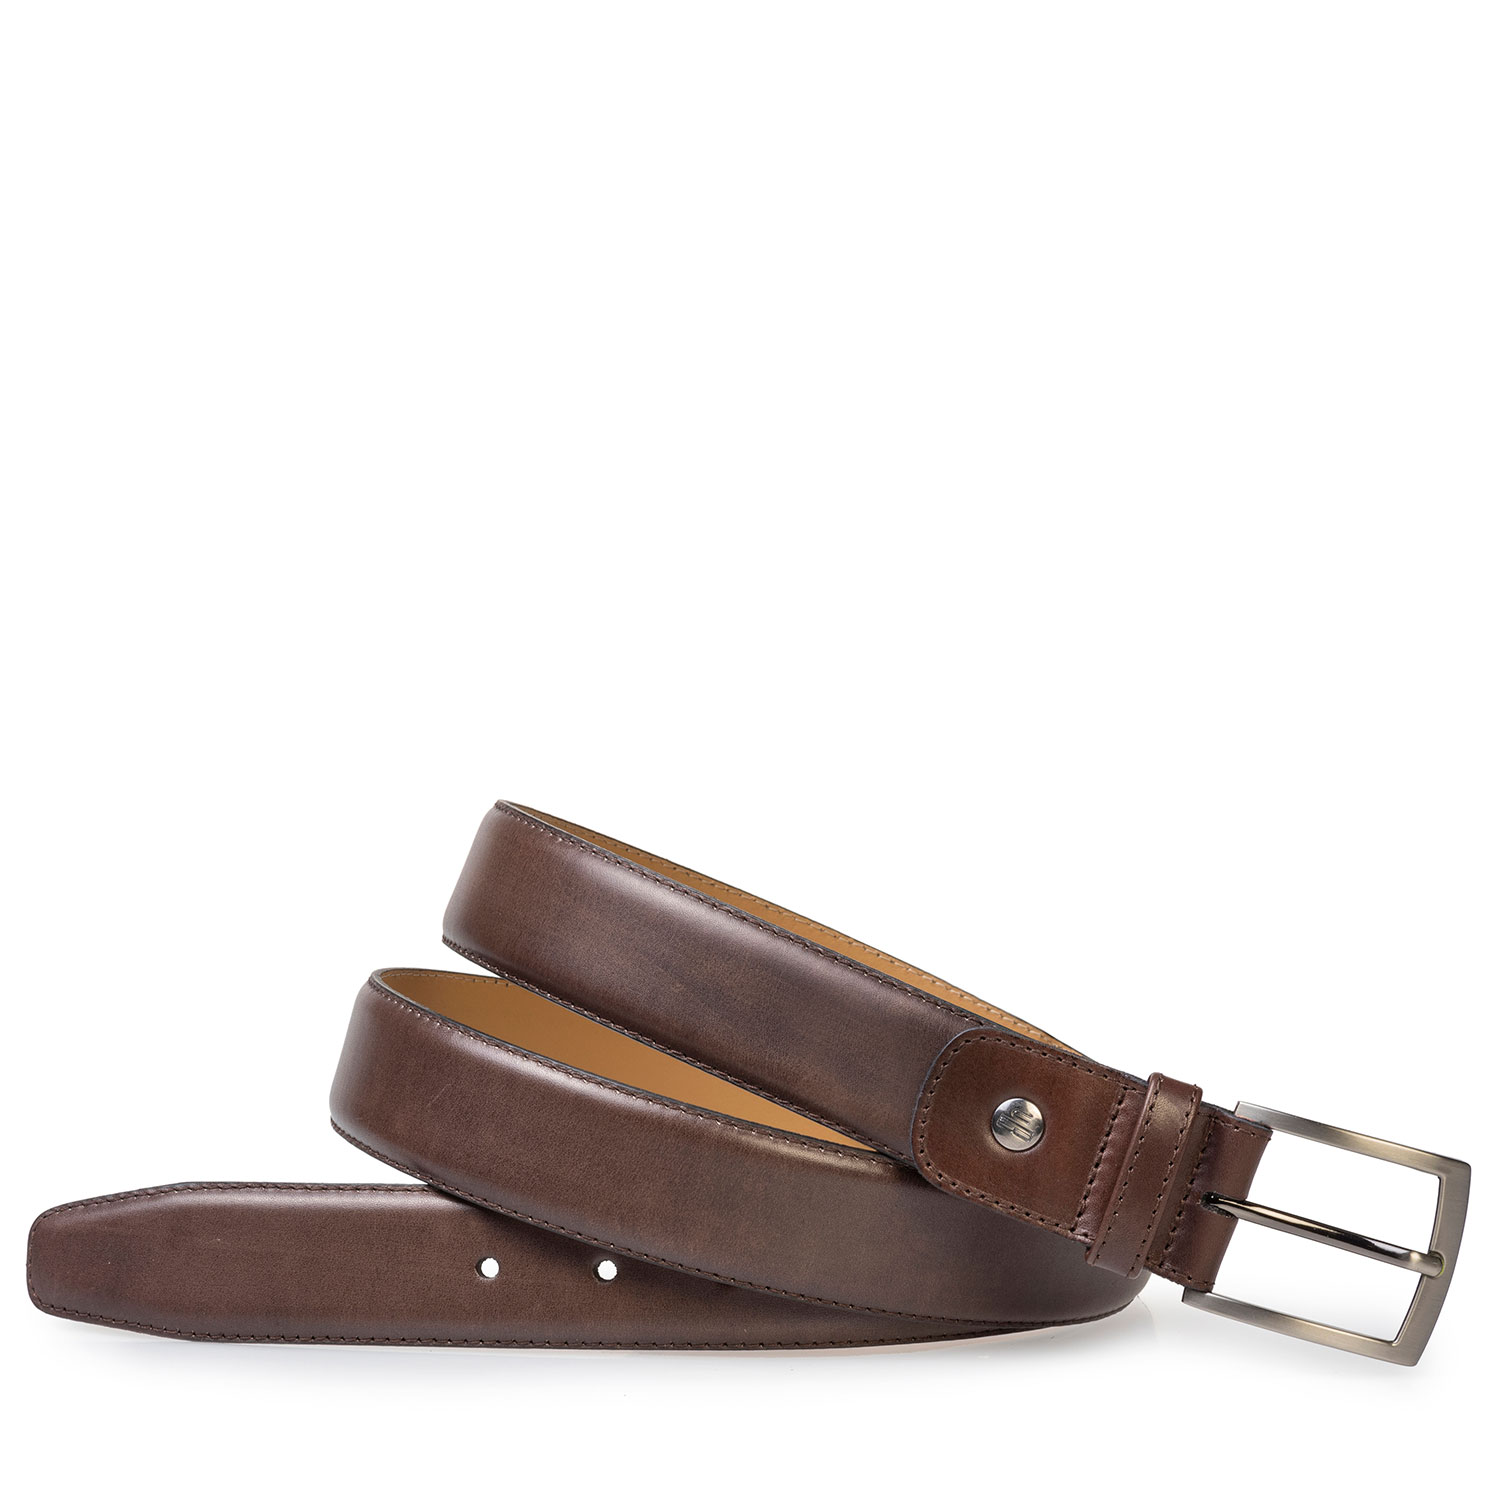 75533/37 - Dark brown calf leather belt